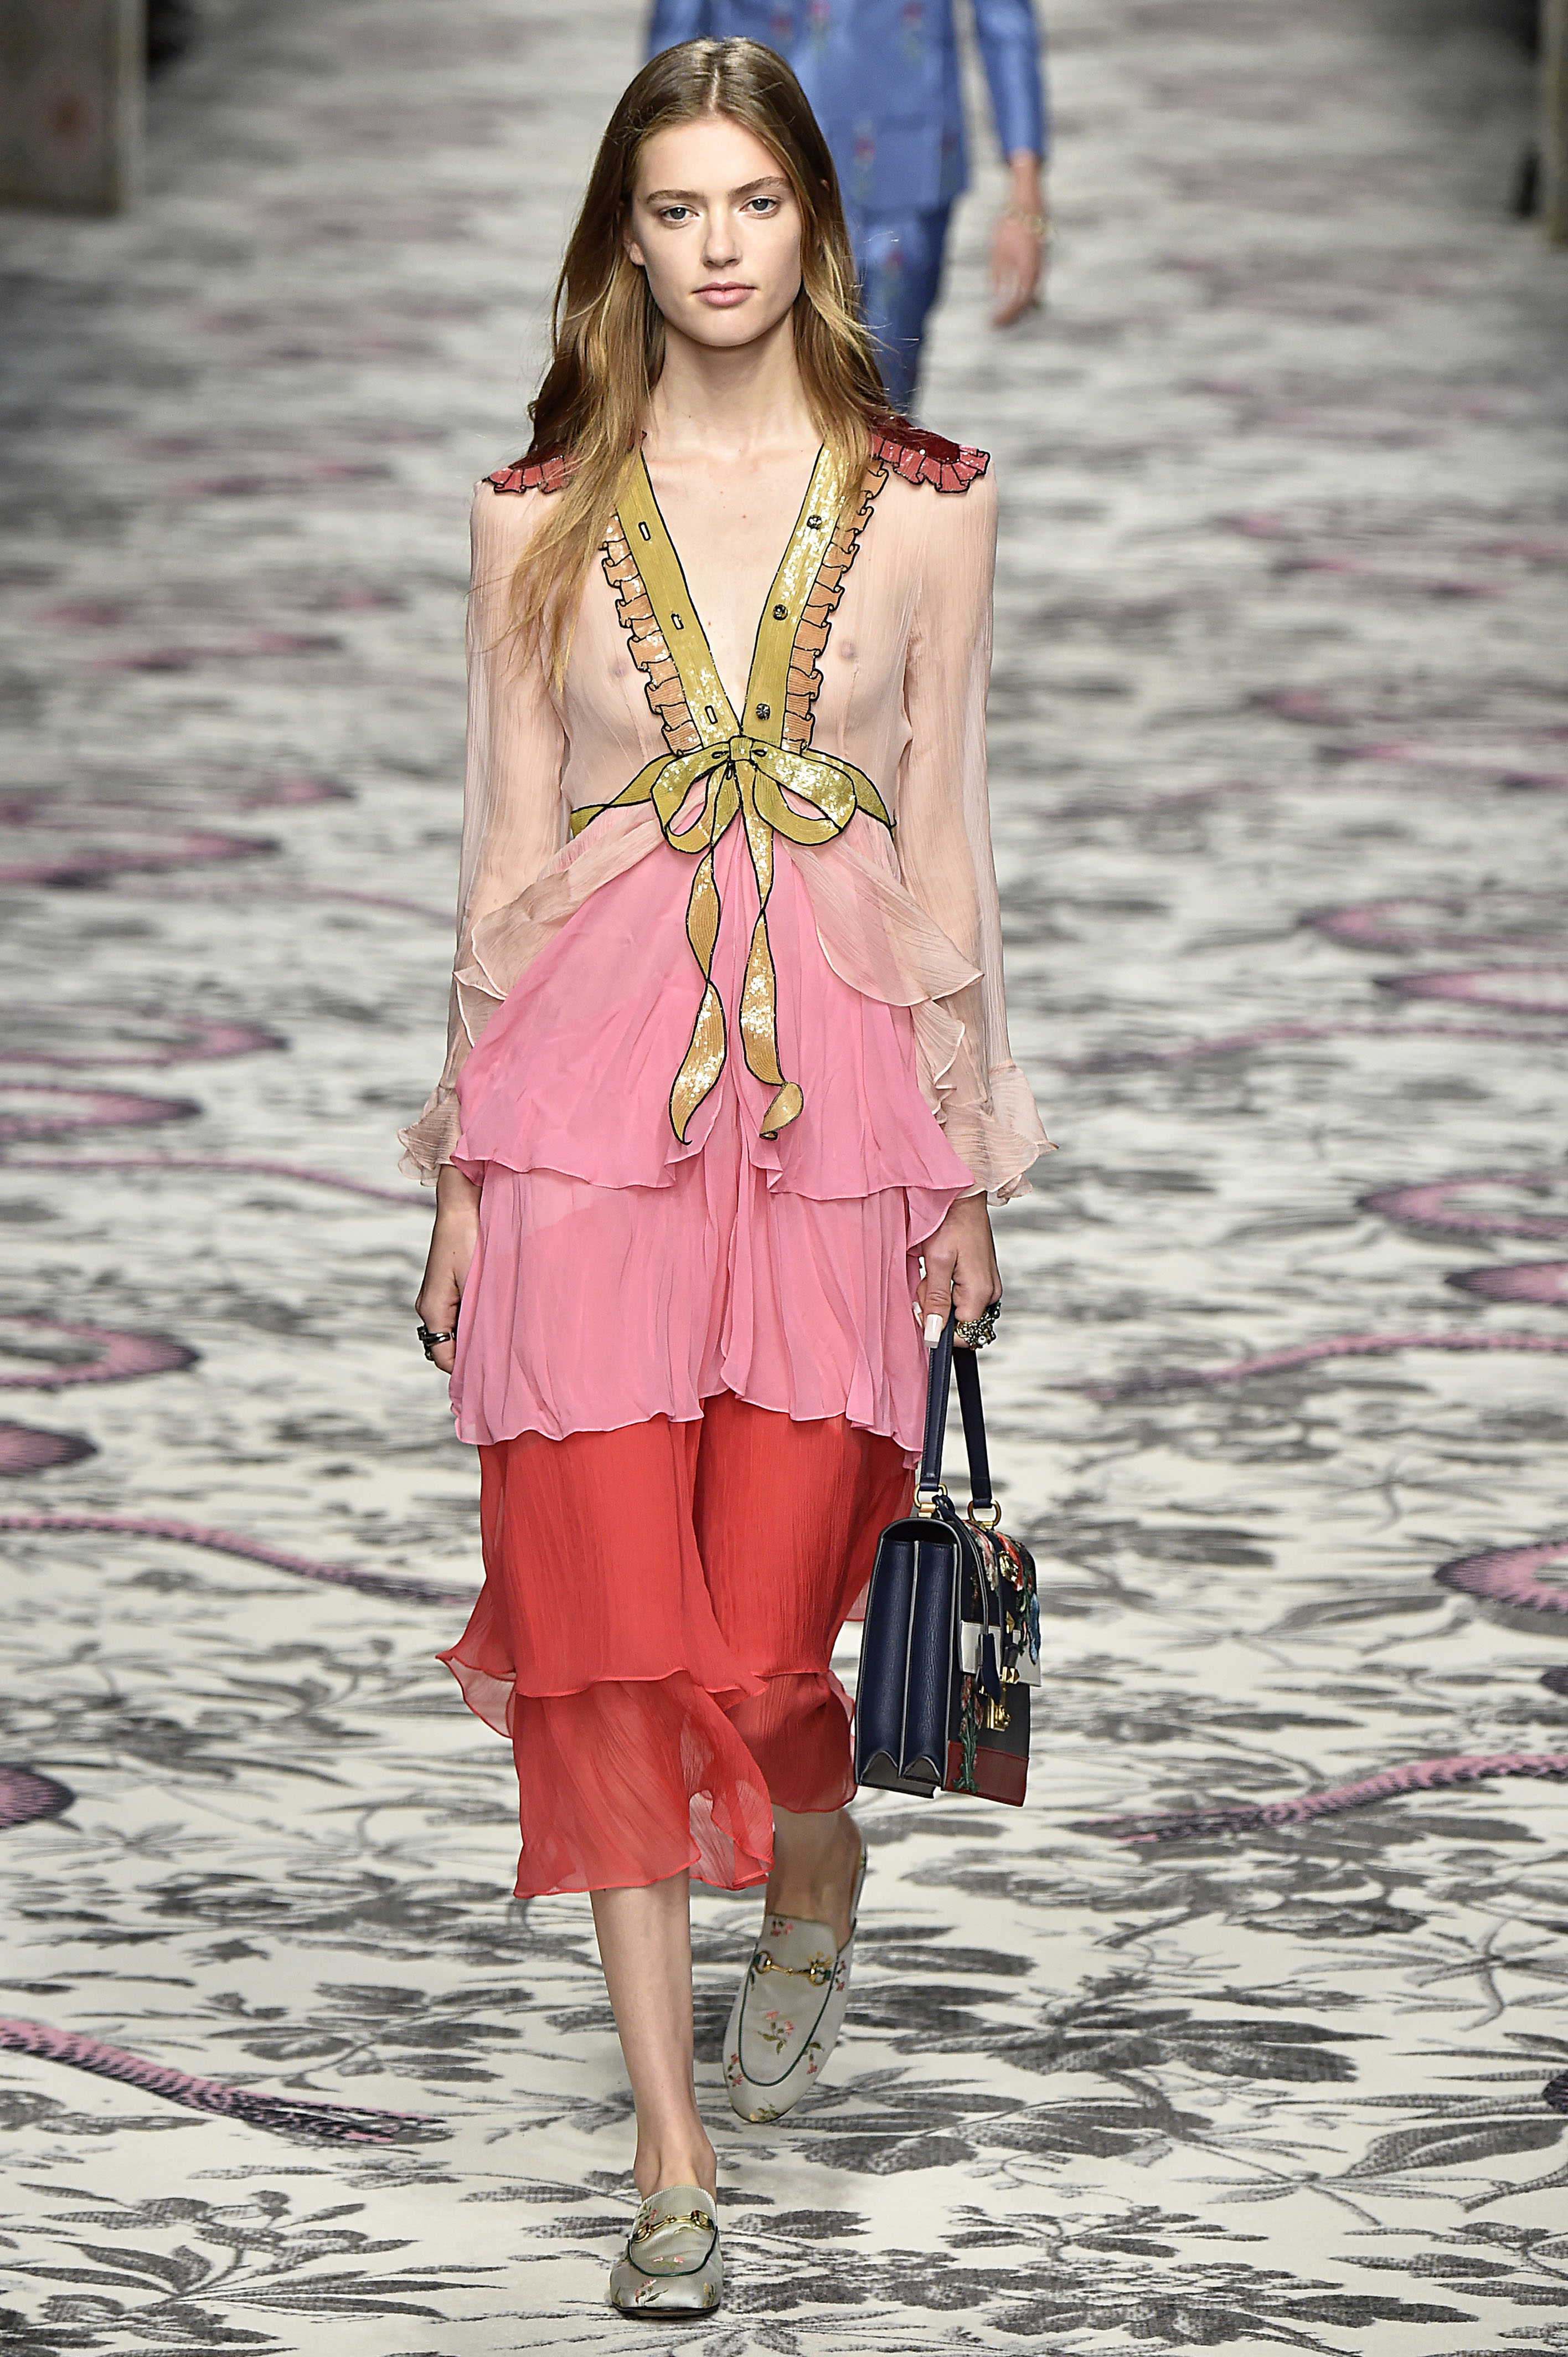 The Gucci Dress That\'s Been Everywhere This Season - Racked